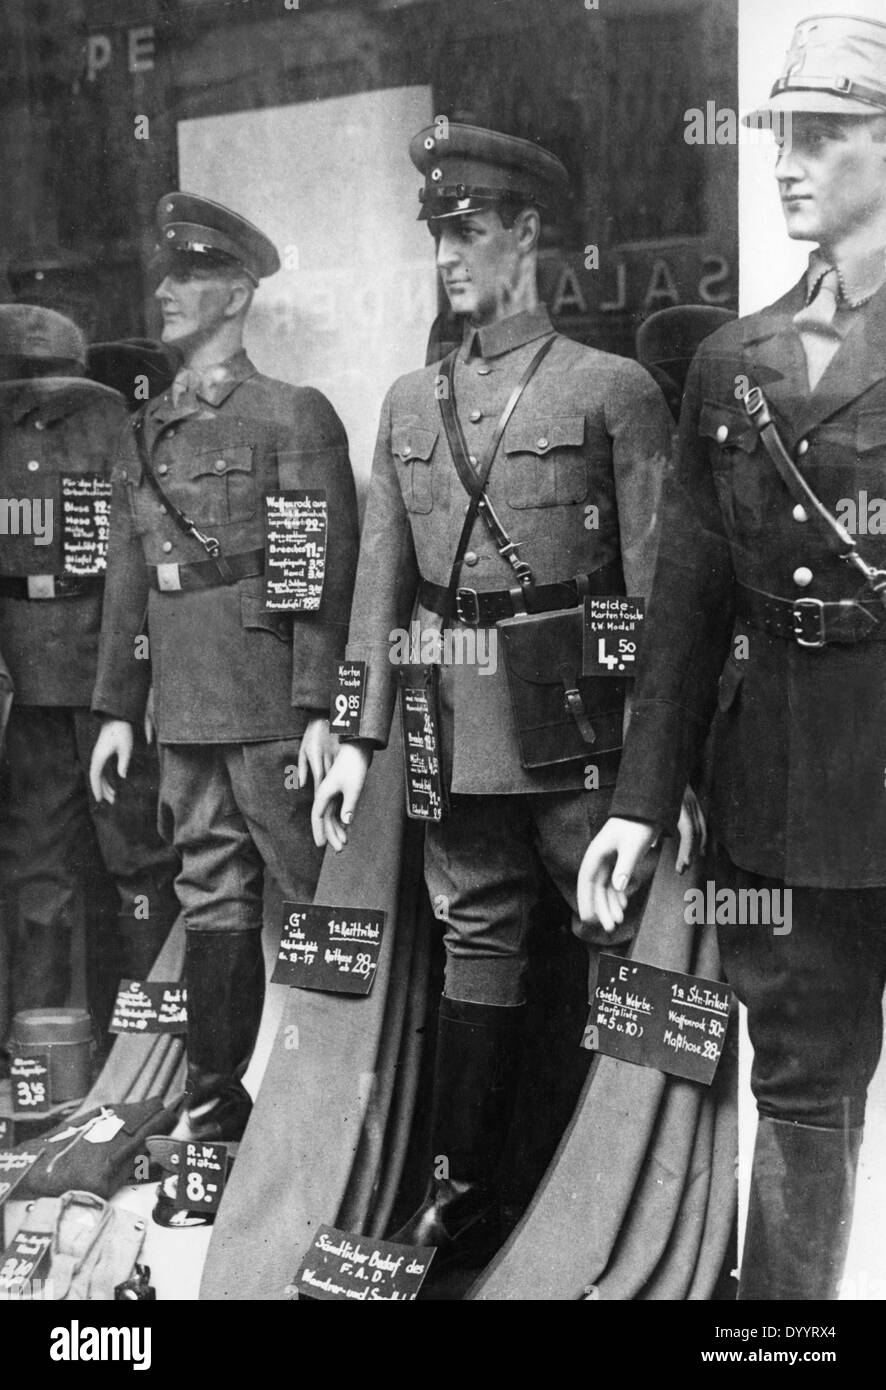 Store with uniforms in Berlin, 1933 - Stock Image